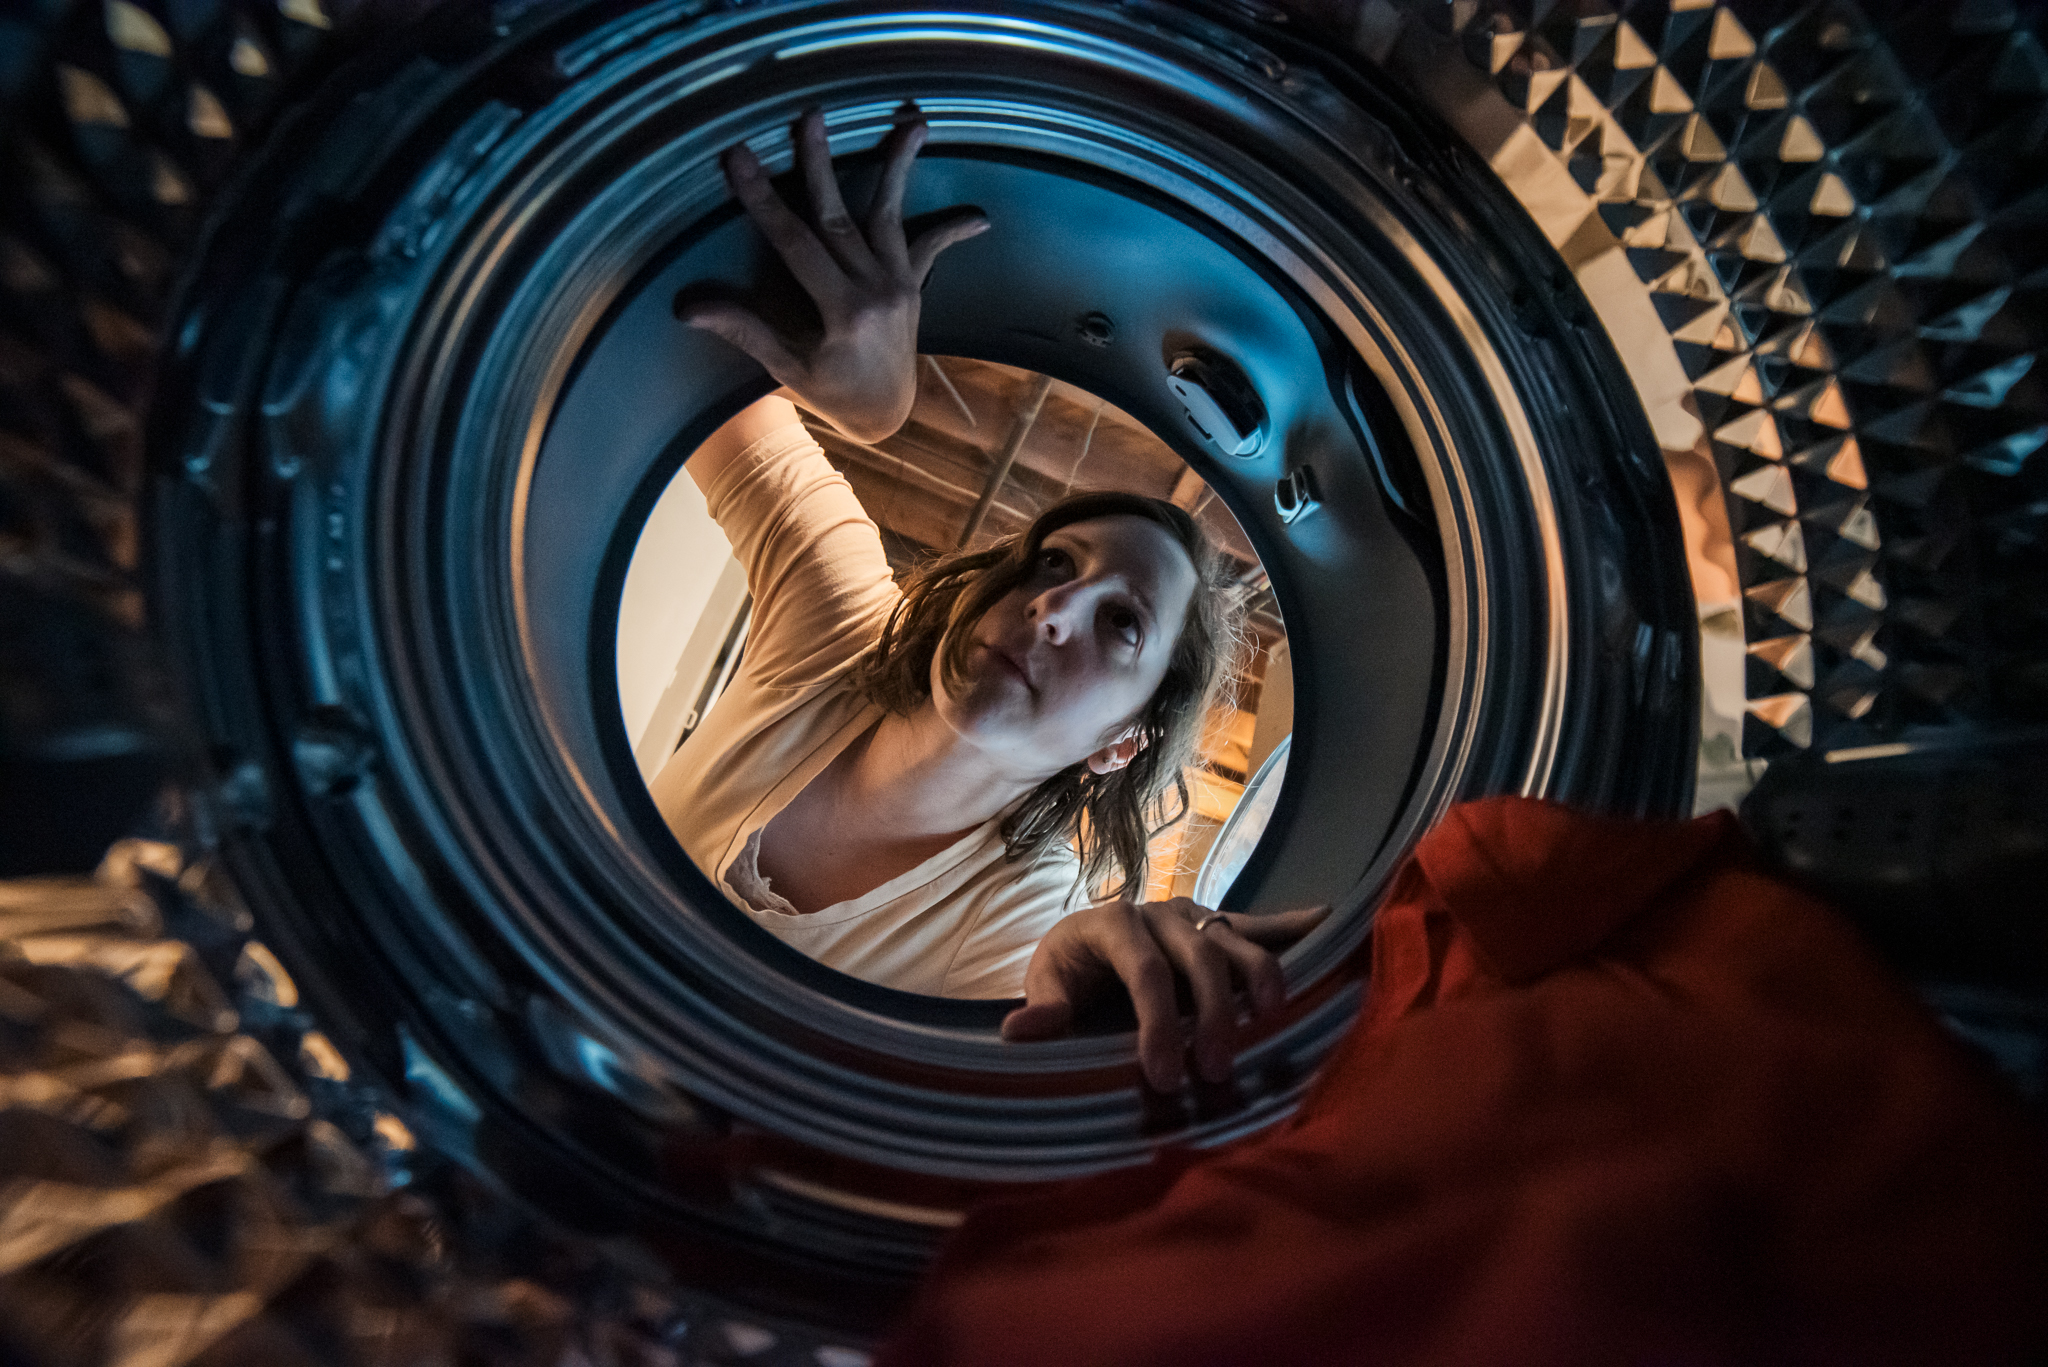 mother looking into dryer doing laundry